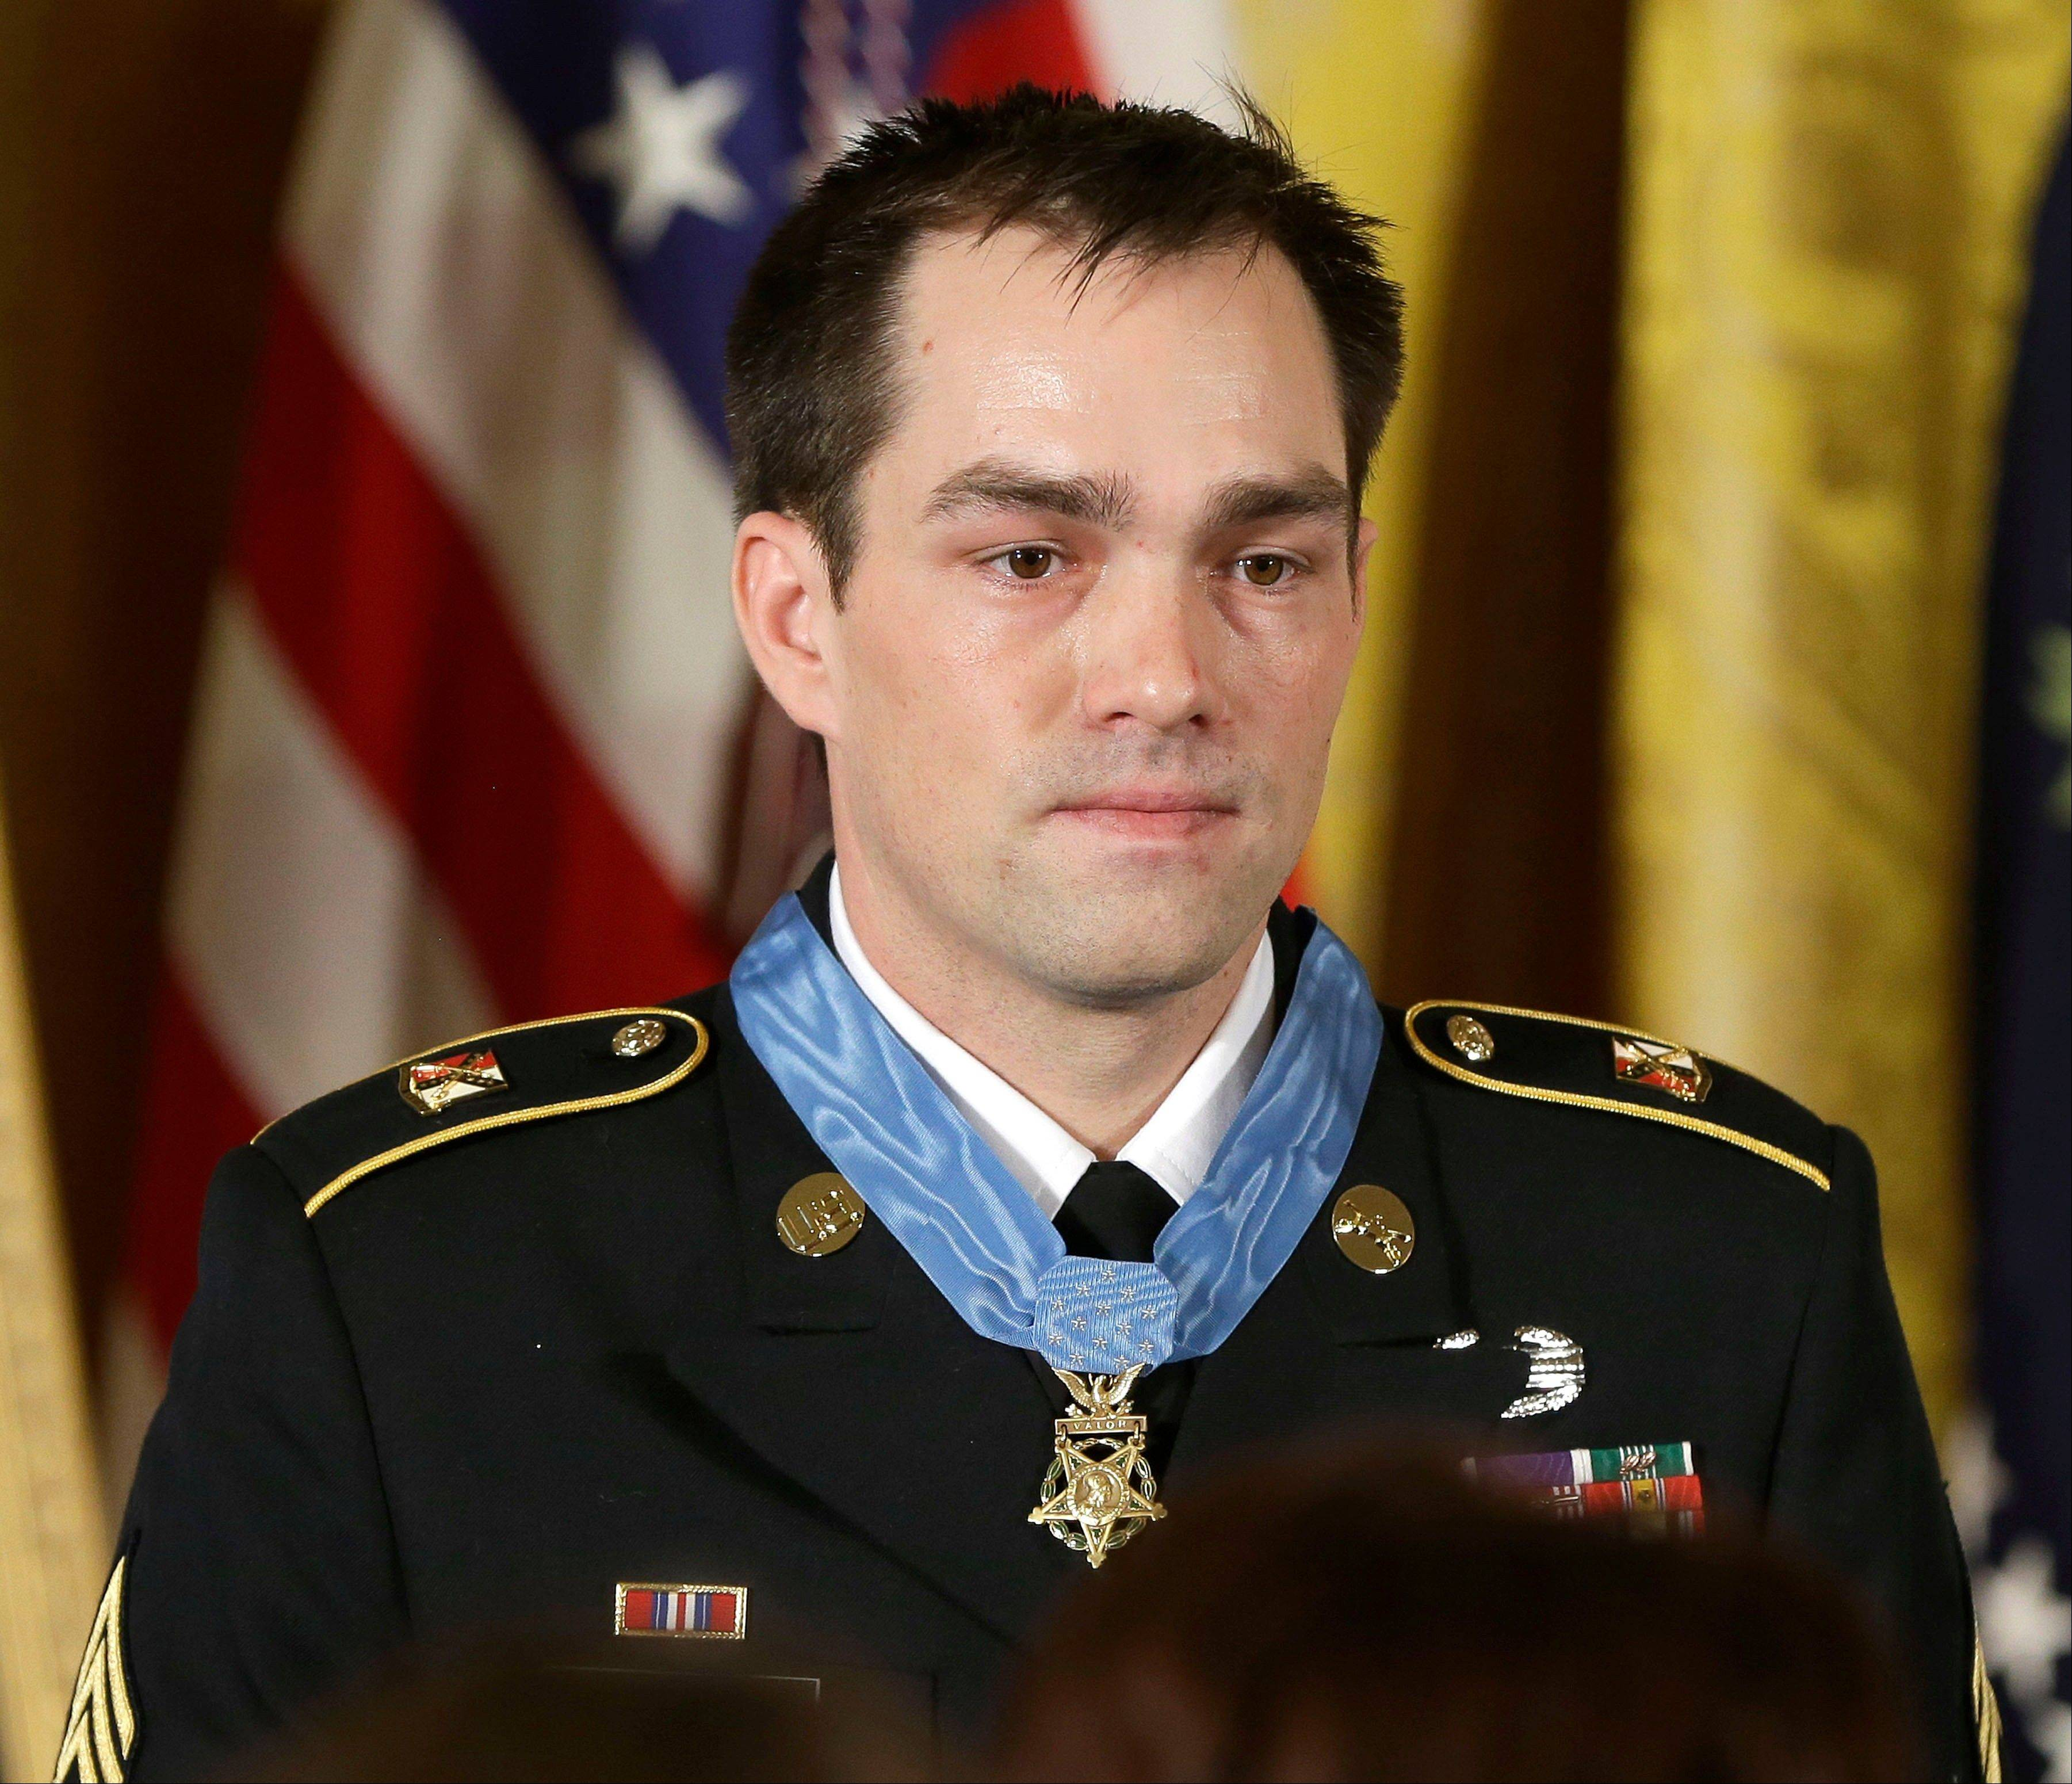 Medal of Honor recipient retired Staff Sgt. Clinton Romesha is seen onstage Monday during the ceremony in the East Room of the White House in Washington. Romesha's leadership during a daylong attack by hundreds of fighters on Combat Outpost Keating in Afghanistan led to award.